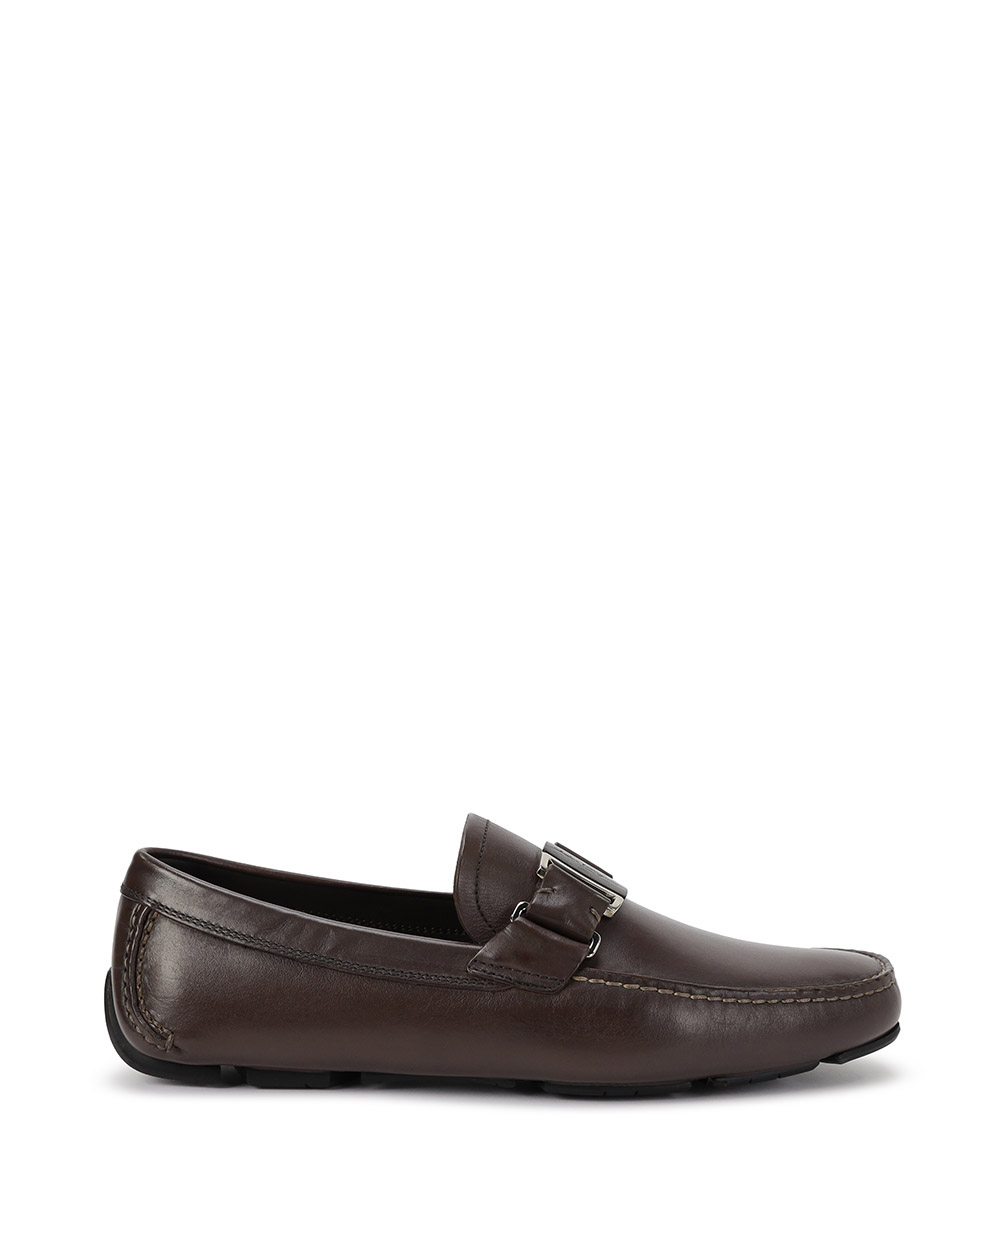 Sardegna Leather Loafers